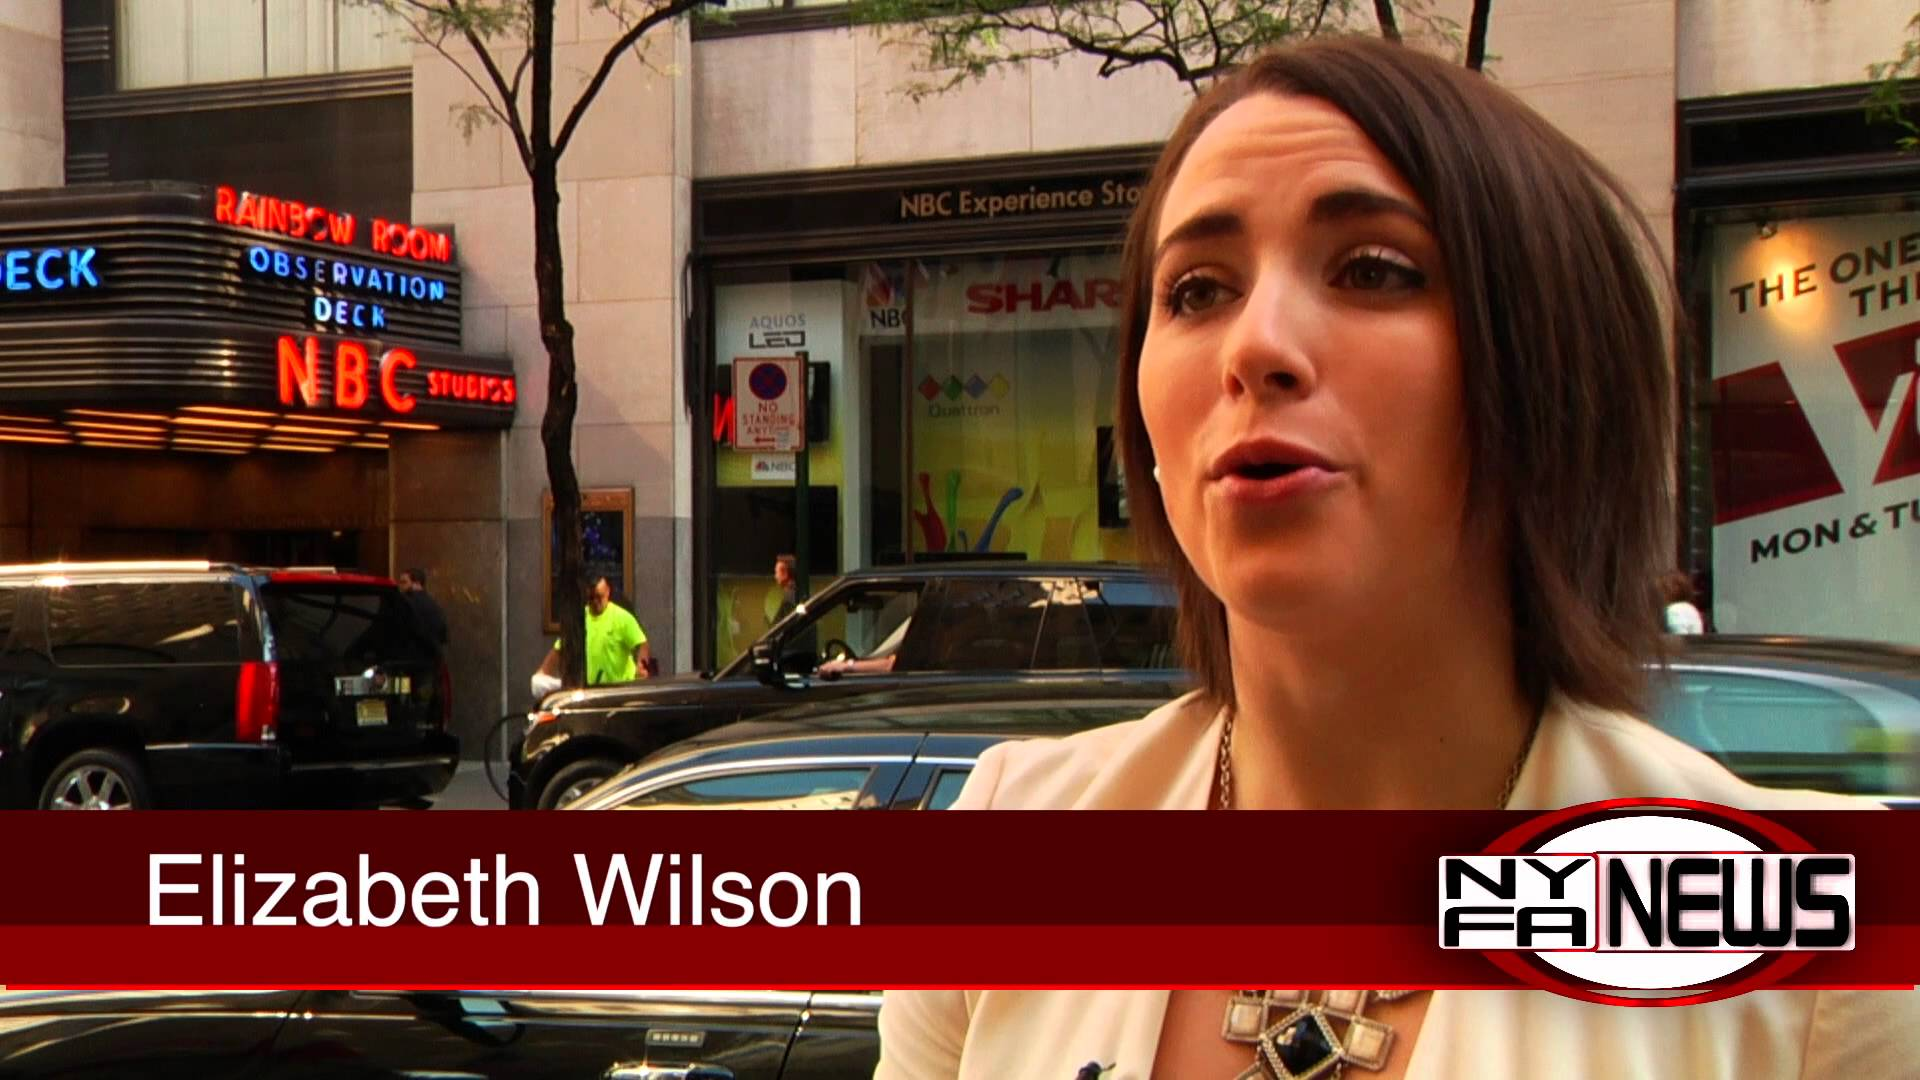 Elizabeth Wilson Reviews New York Film Academy's Broadcast Journalism School